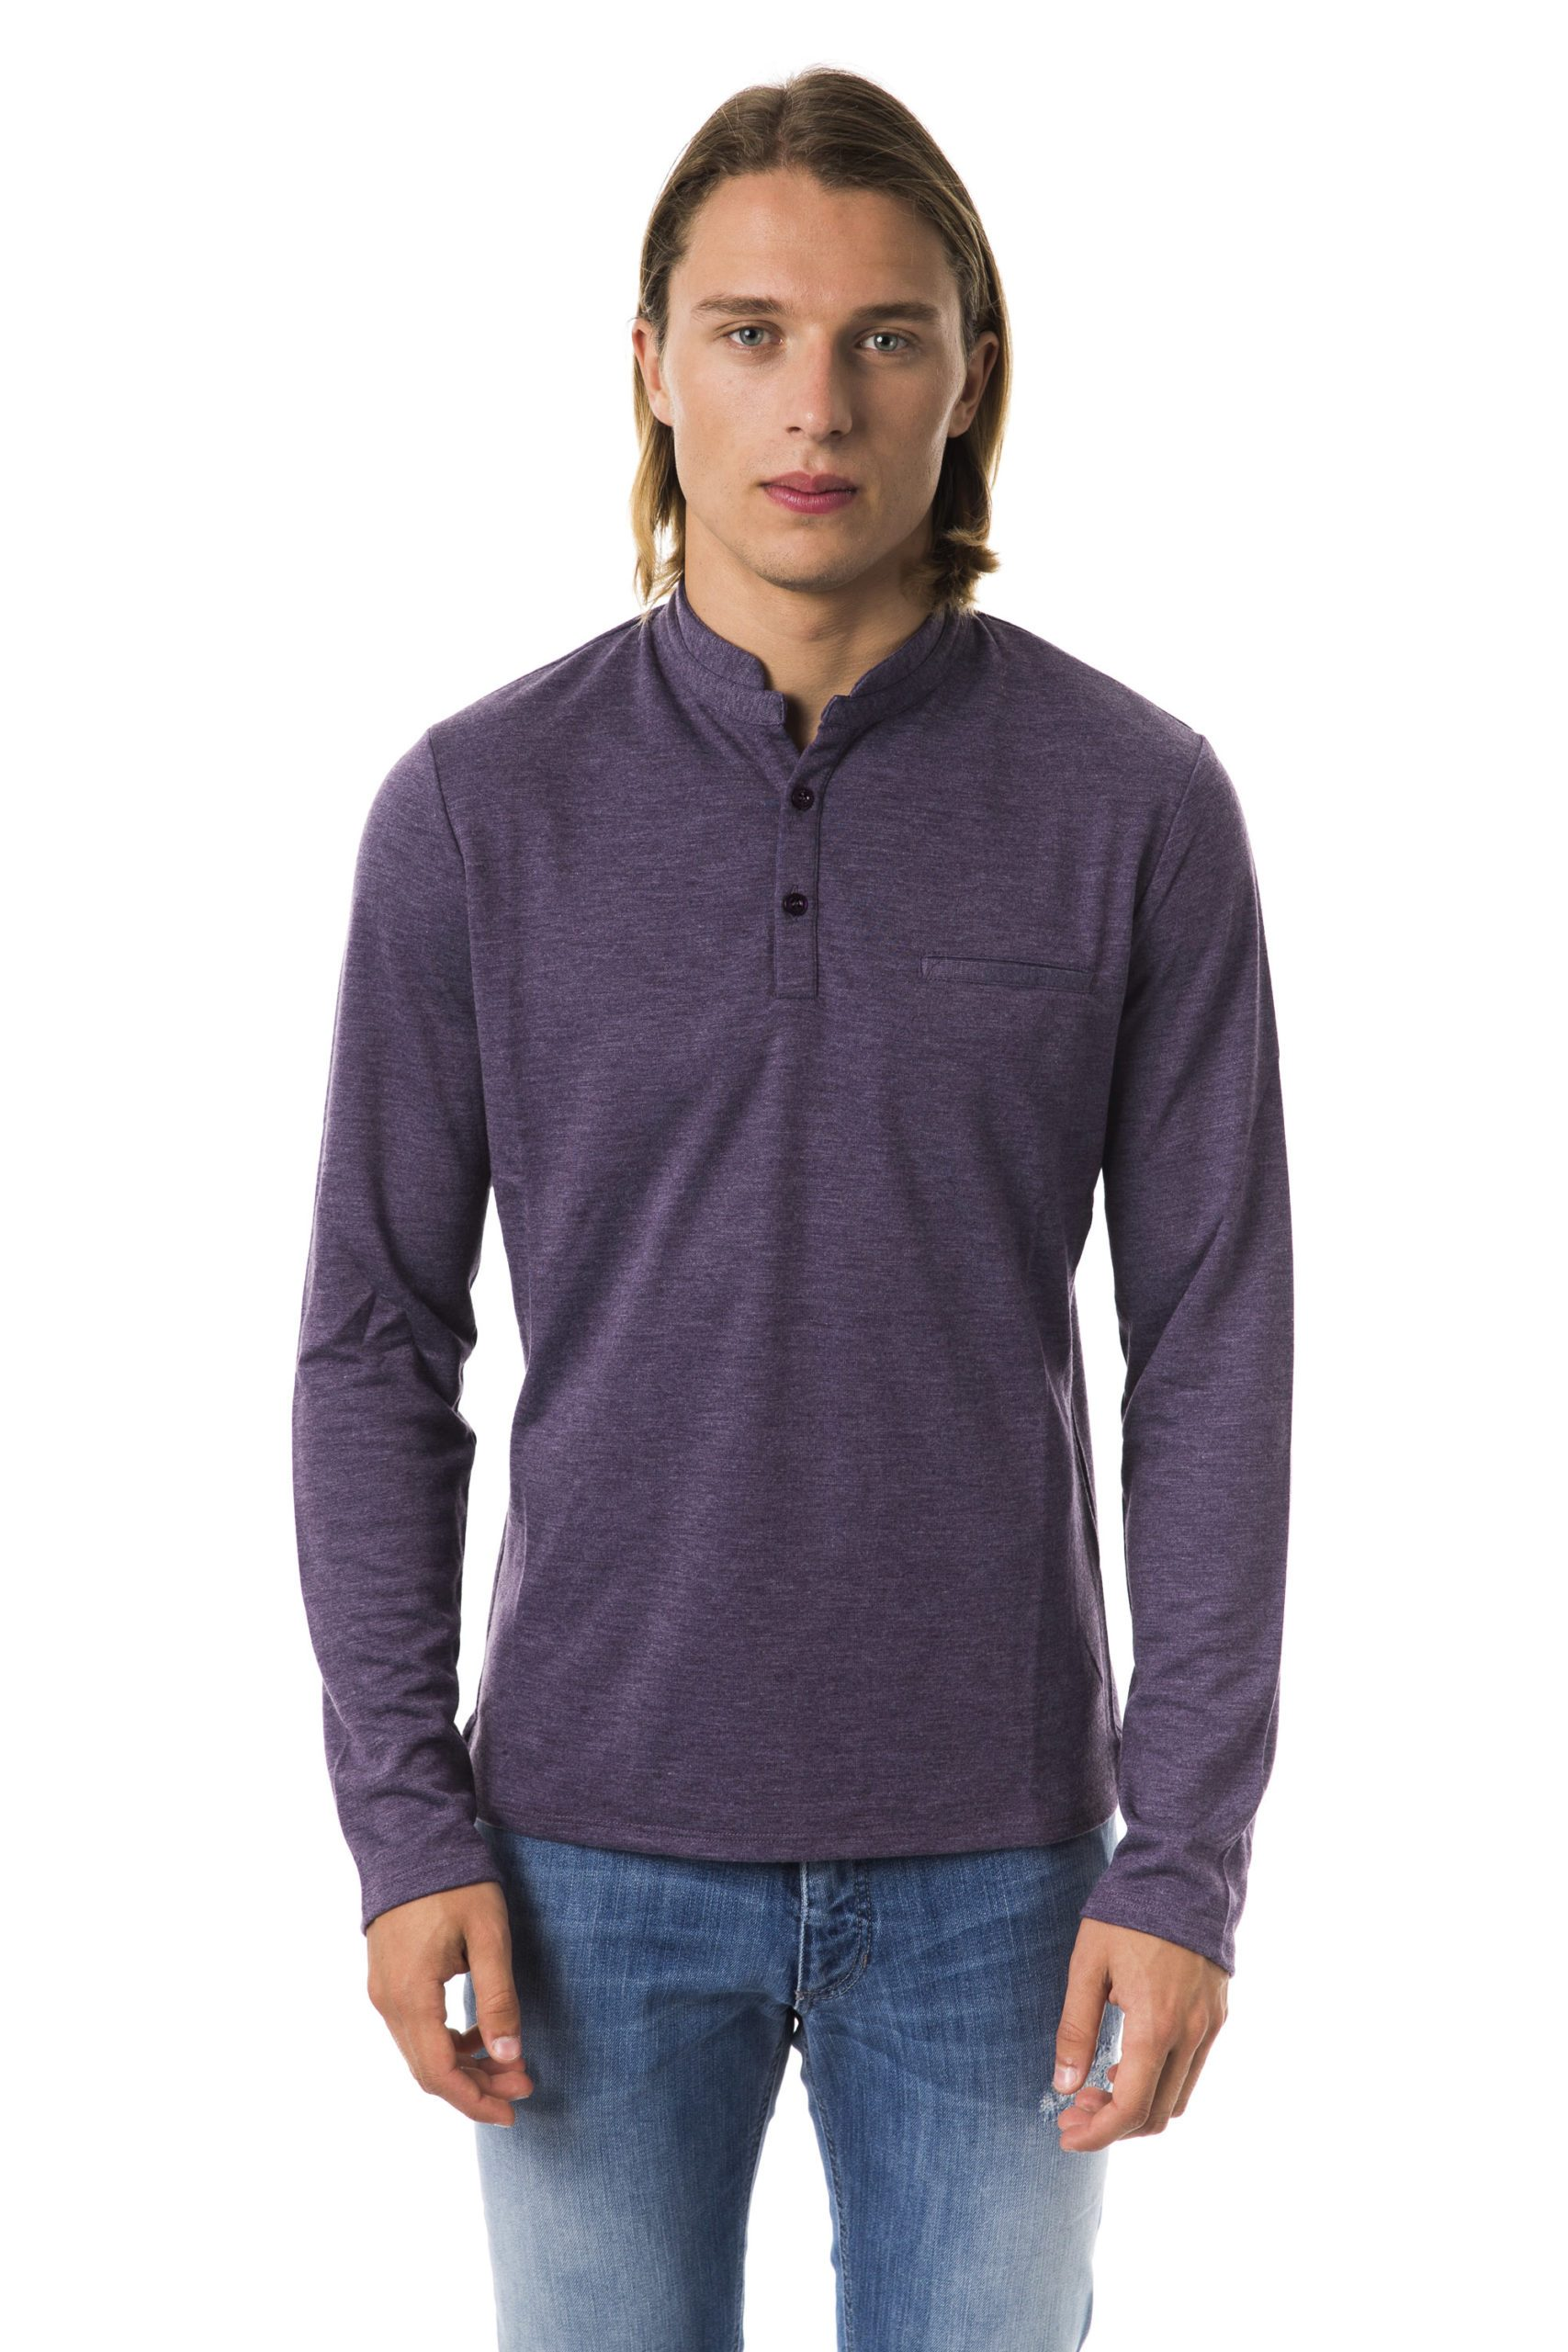 Byblos Men's Polo Shirt Violet BY994436 - S